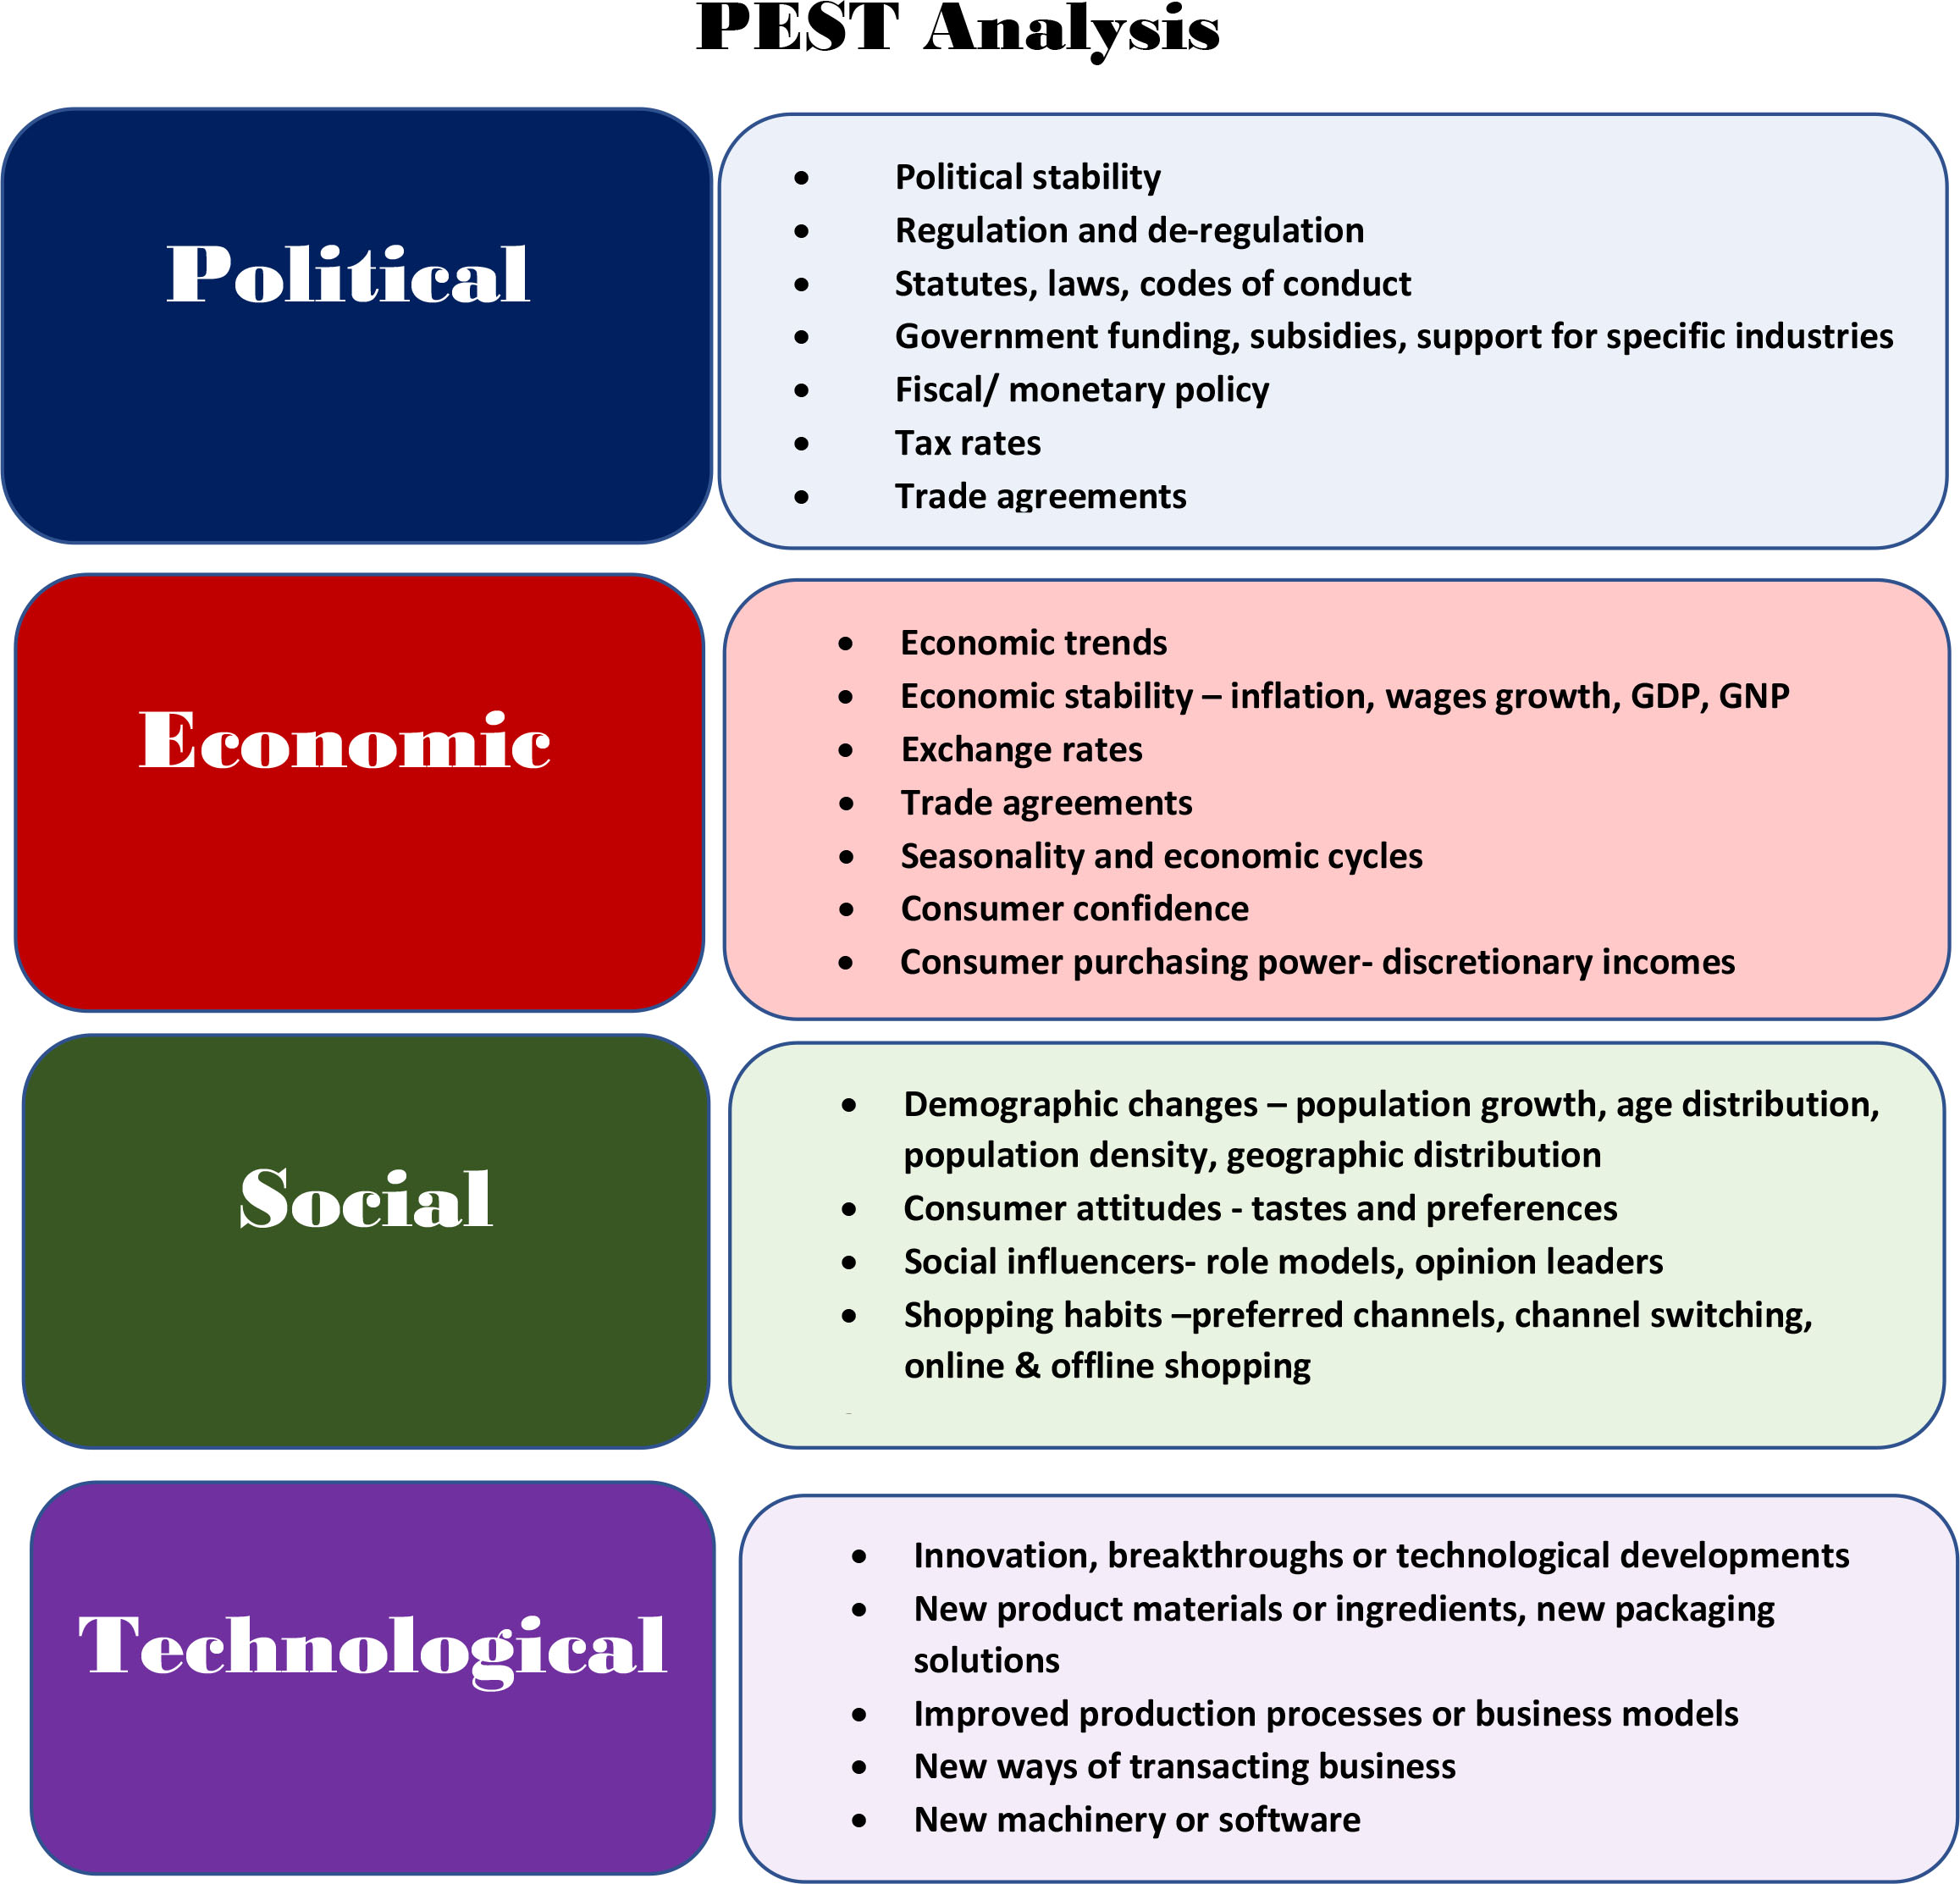 pest analysis of leather industry in pakistan Introduction the leather industry in pakistan is a fast developing industrial sector  of the country both in terms of its qualitative as well as export.